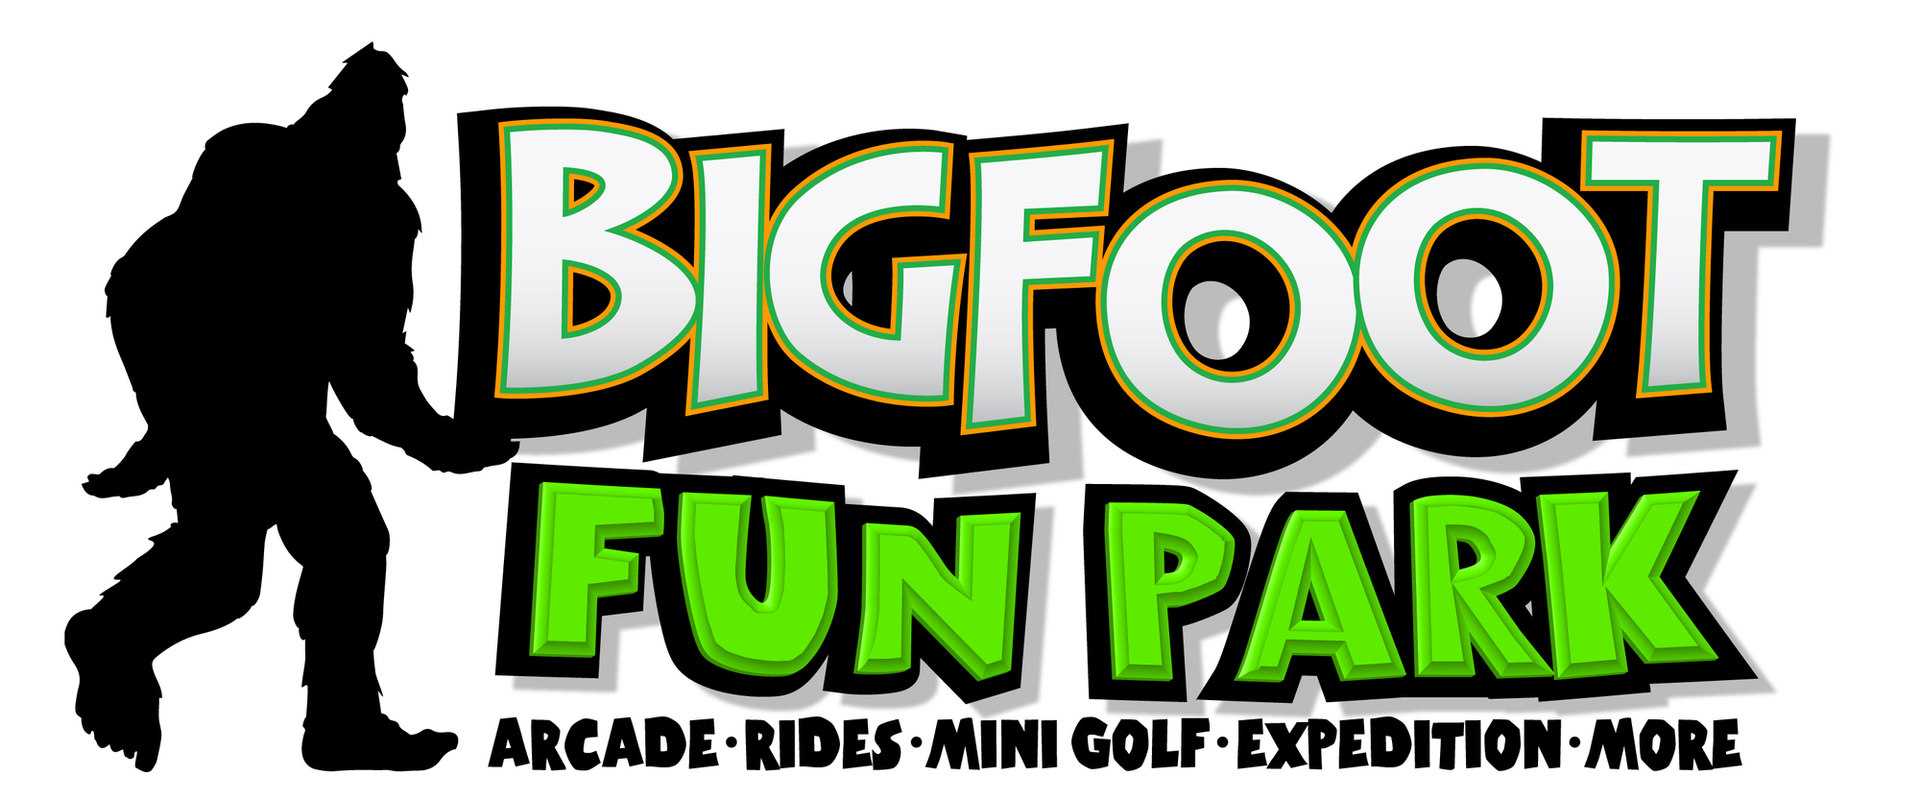 Bigfoot_FUNPARK_LOGO_FINAL_RGB.jpg